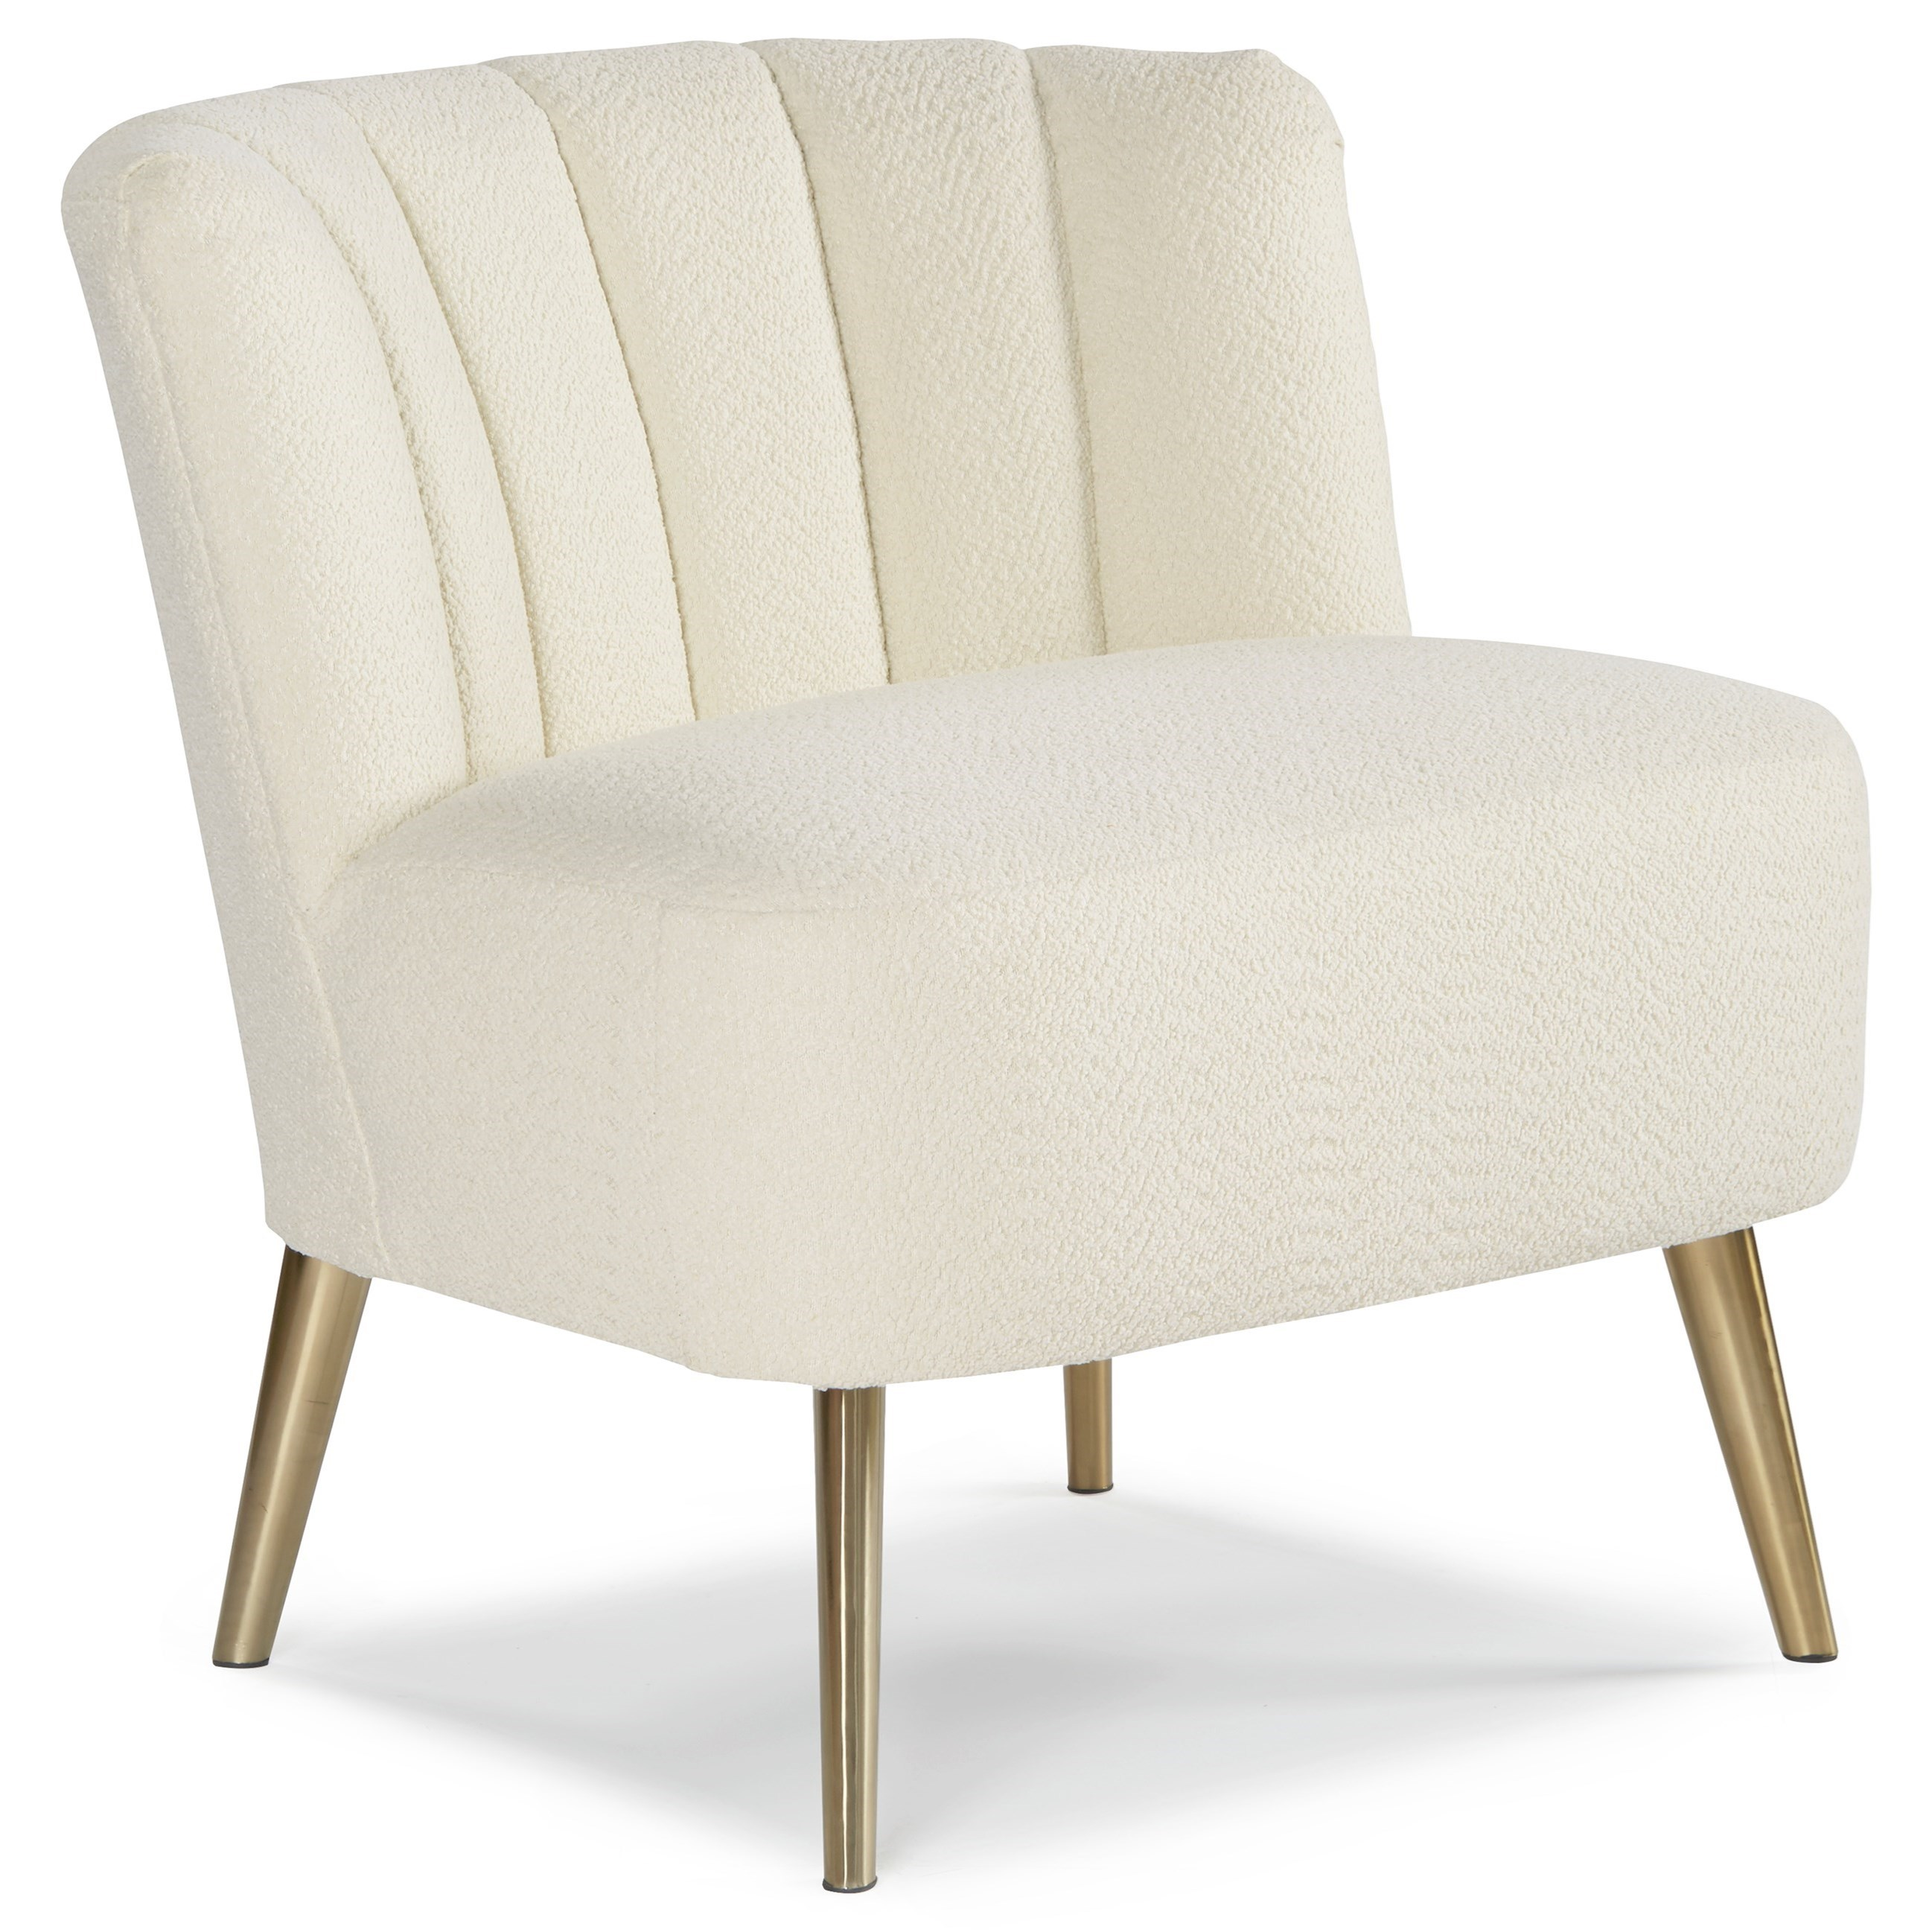 Best Xpress - Ameretta Accent Chair by Best Home Furnishings at Van Hill Furniture